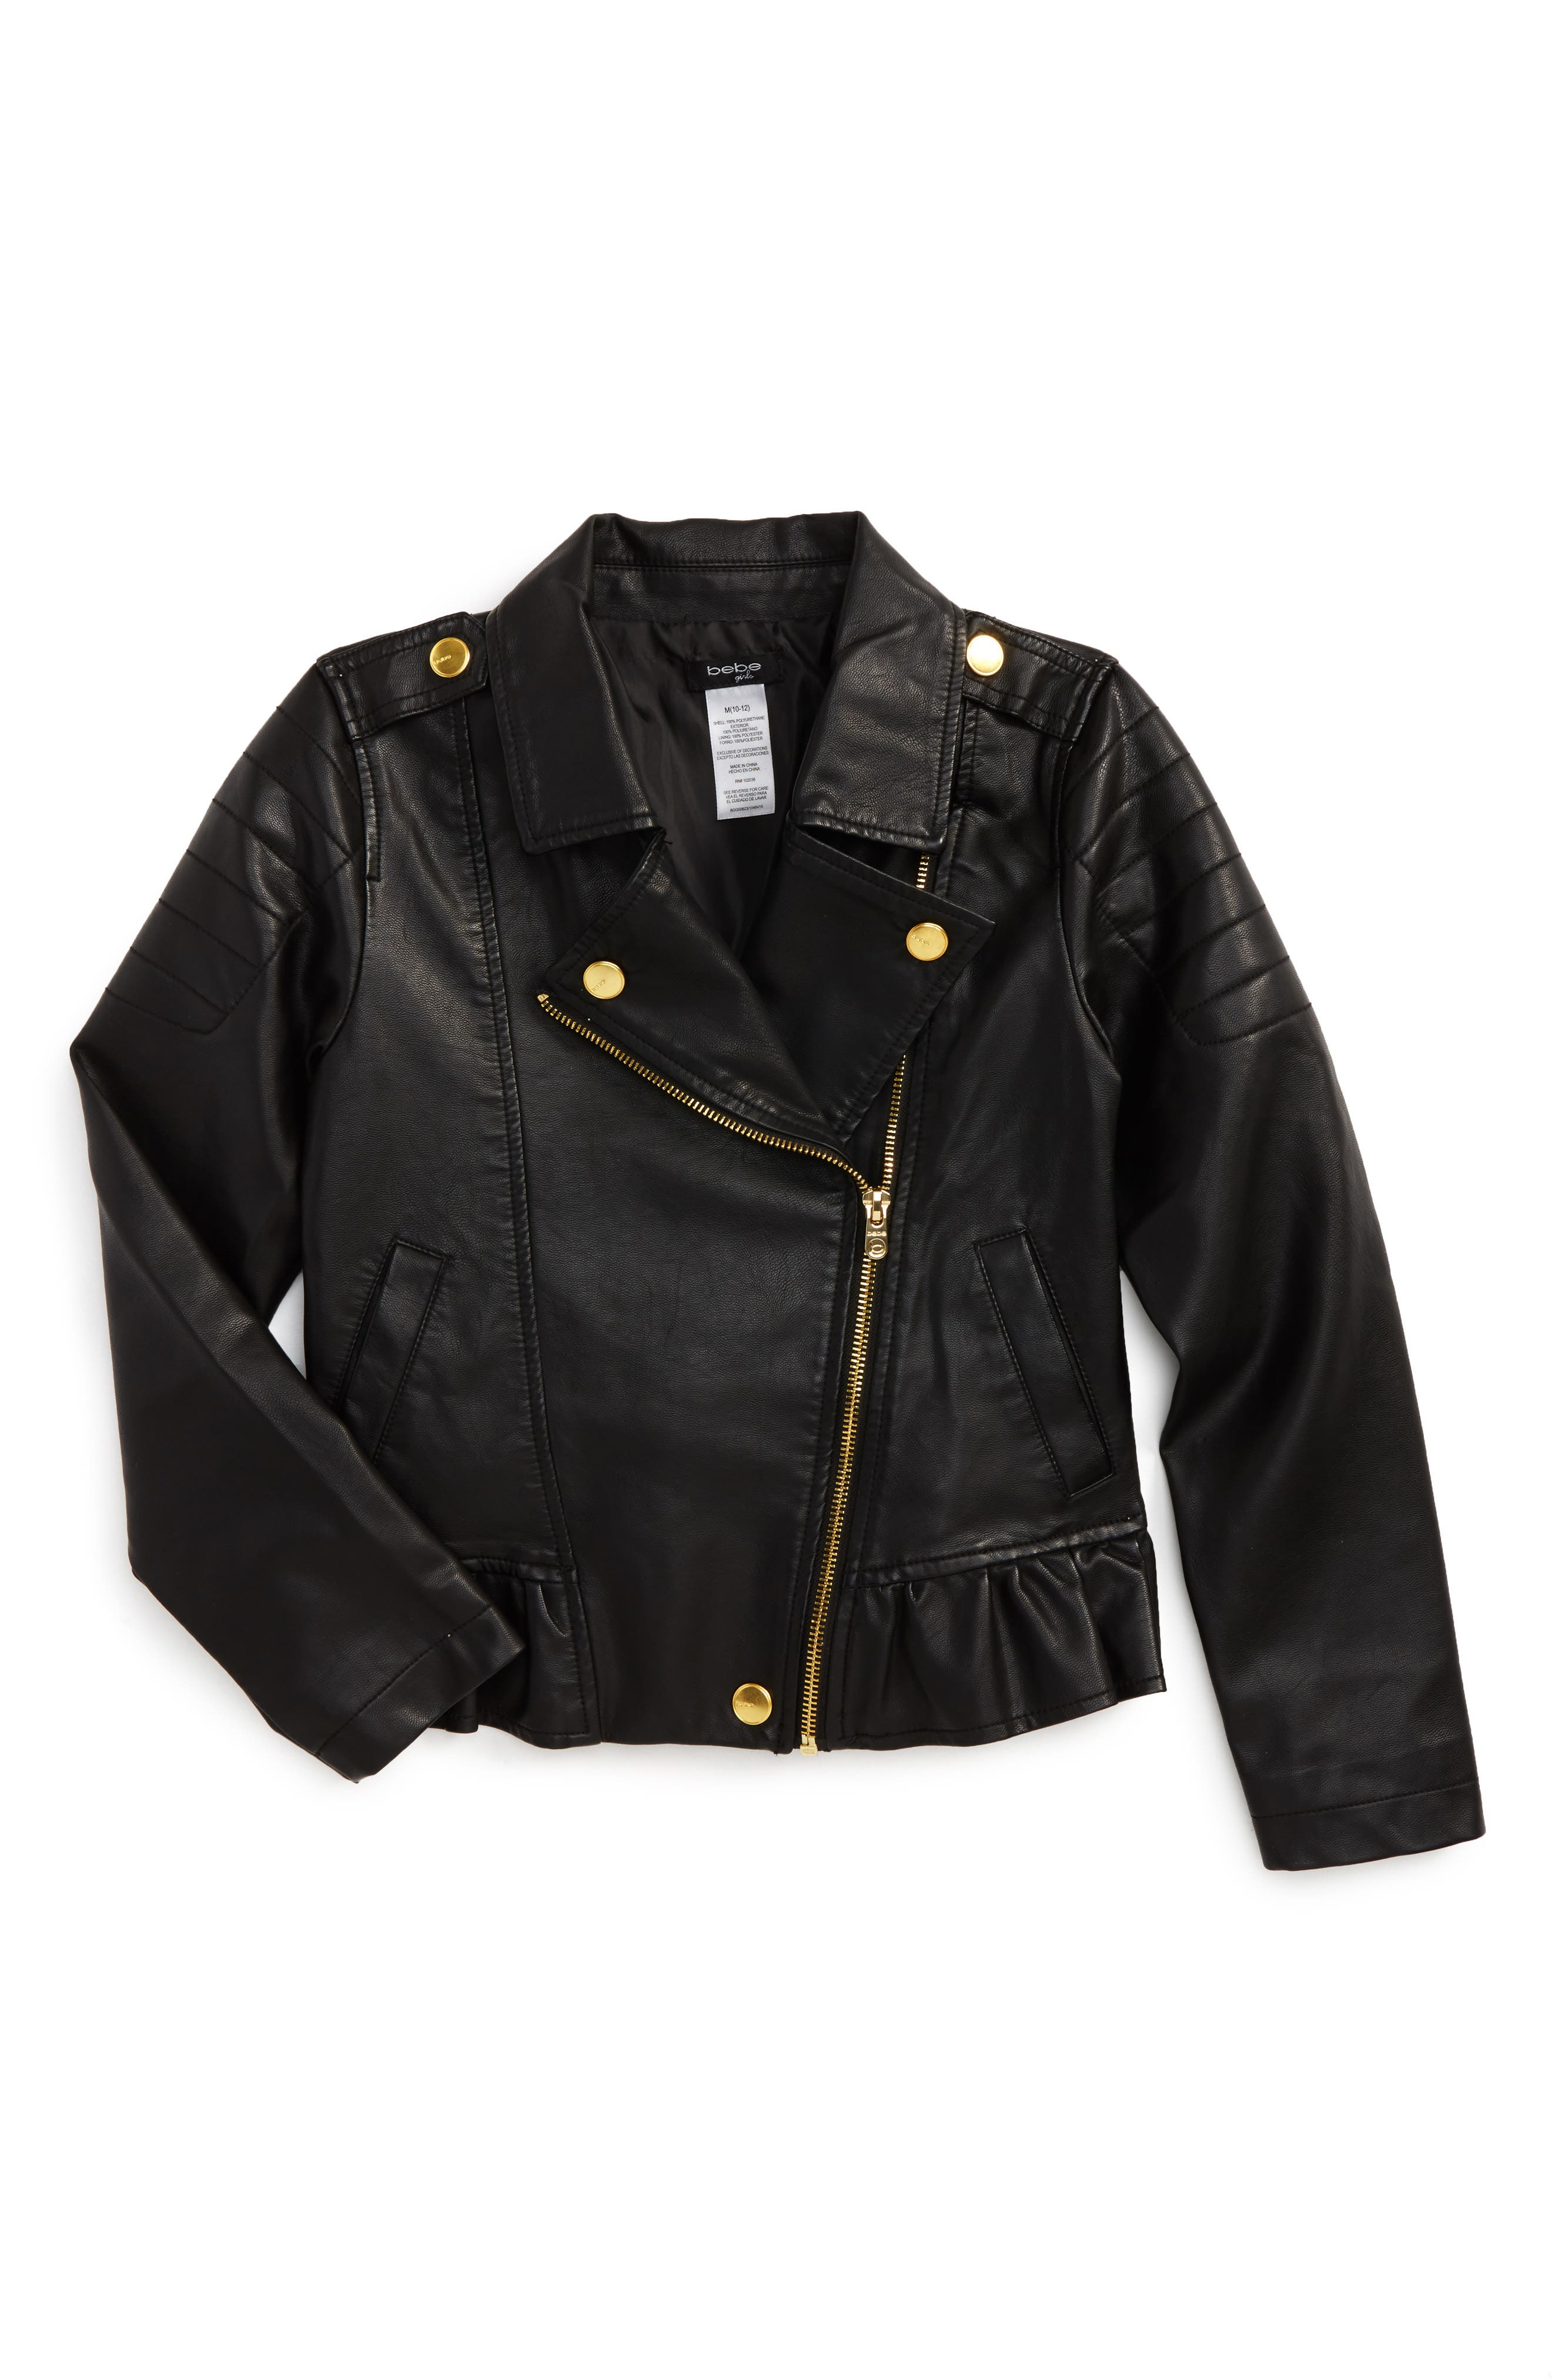 Alternate Image 1 Selected - bebe Faux Leather Moto Jacket (Big Girls)